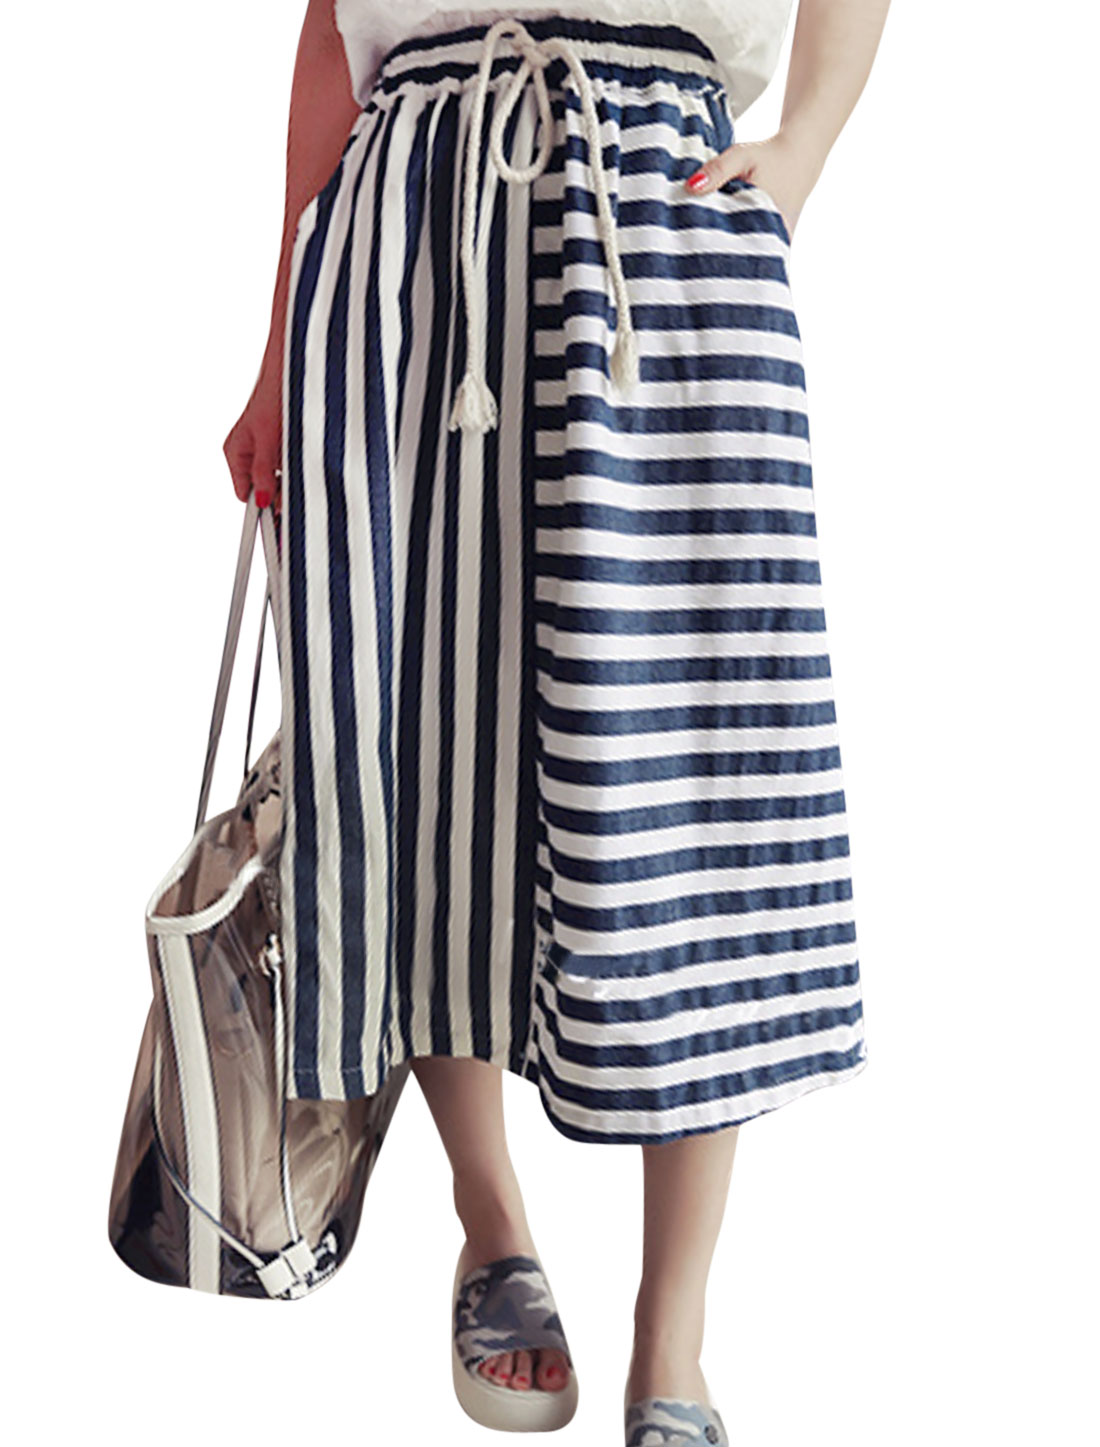 Lady Drawstring Waist Stripes Panel Design Full Skirt White Navy Blue XS